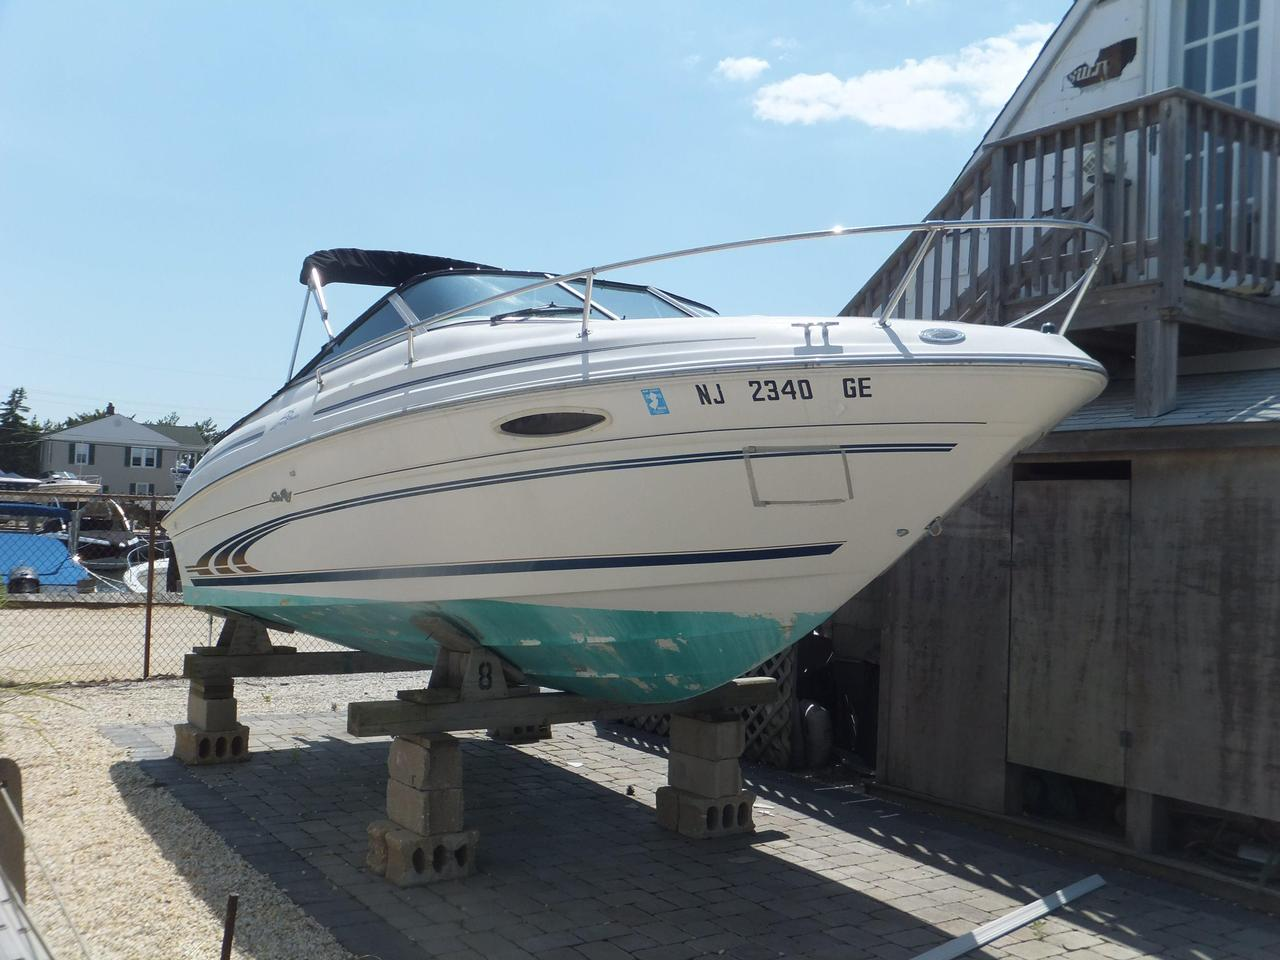 1997 Used Sea Ray 215 Express Cruiser Cuddy Cabin Boat For